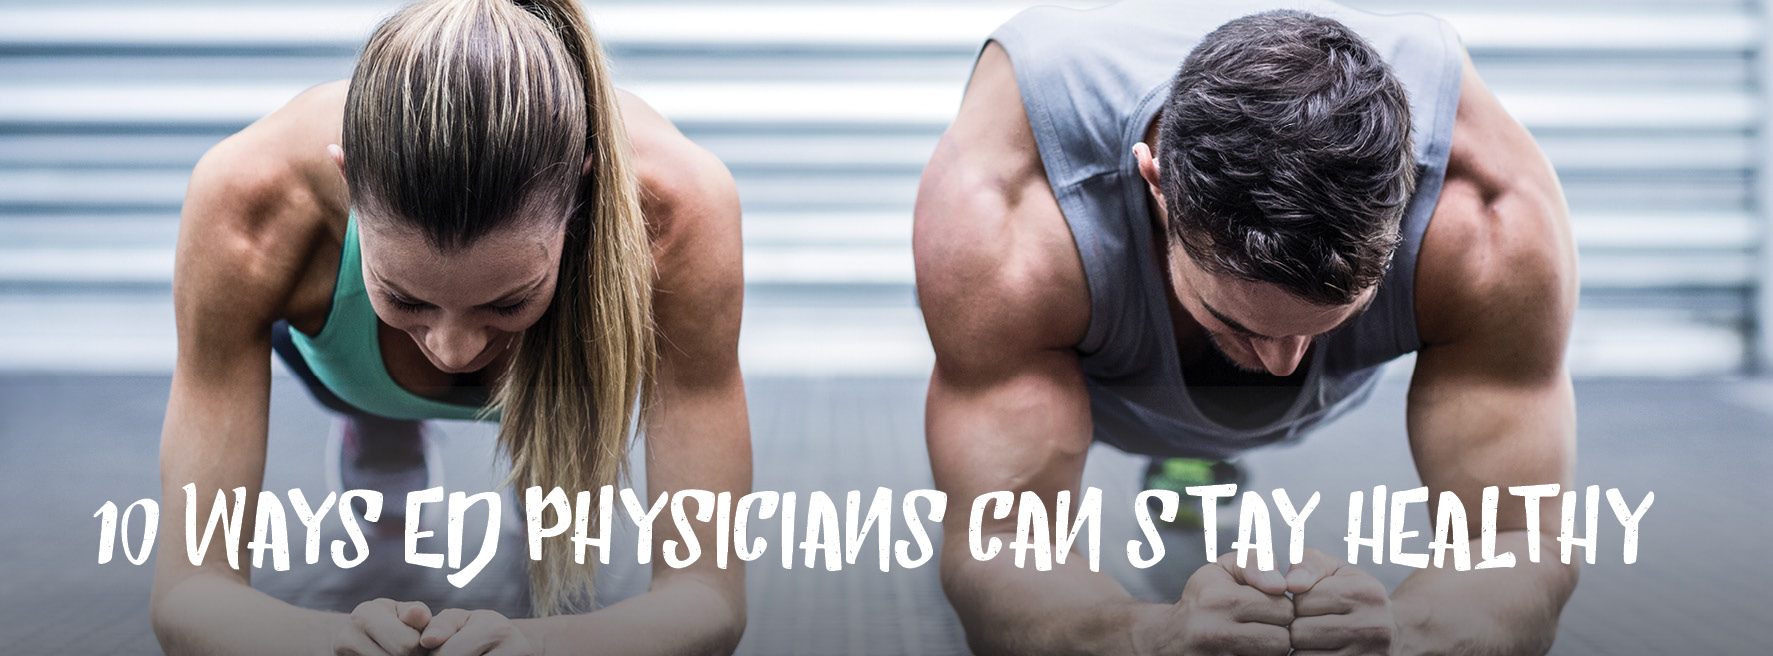 10 Ways ED Physicians Can Stay Healthy